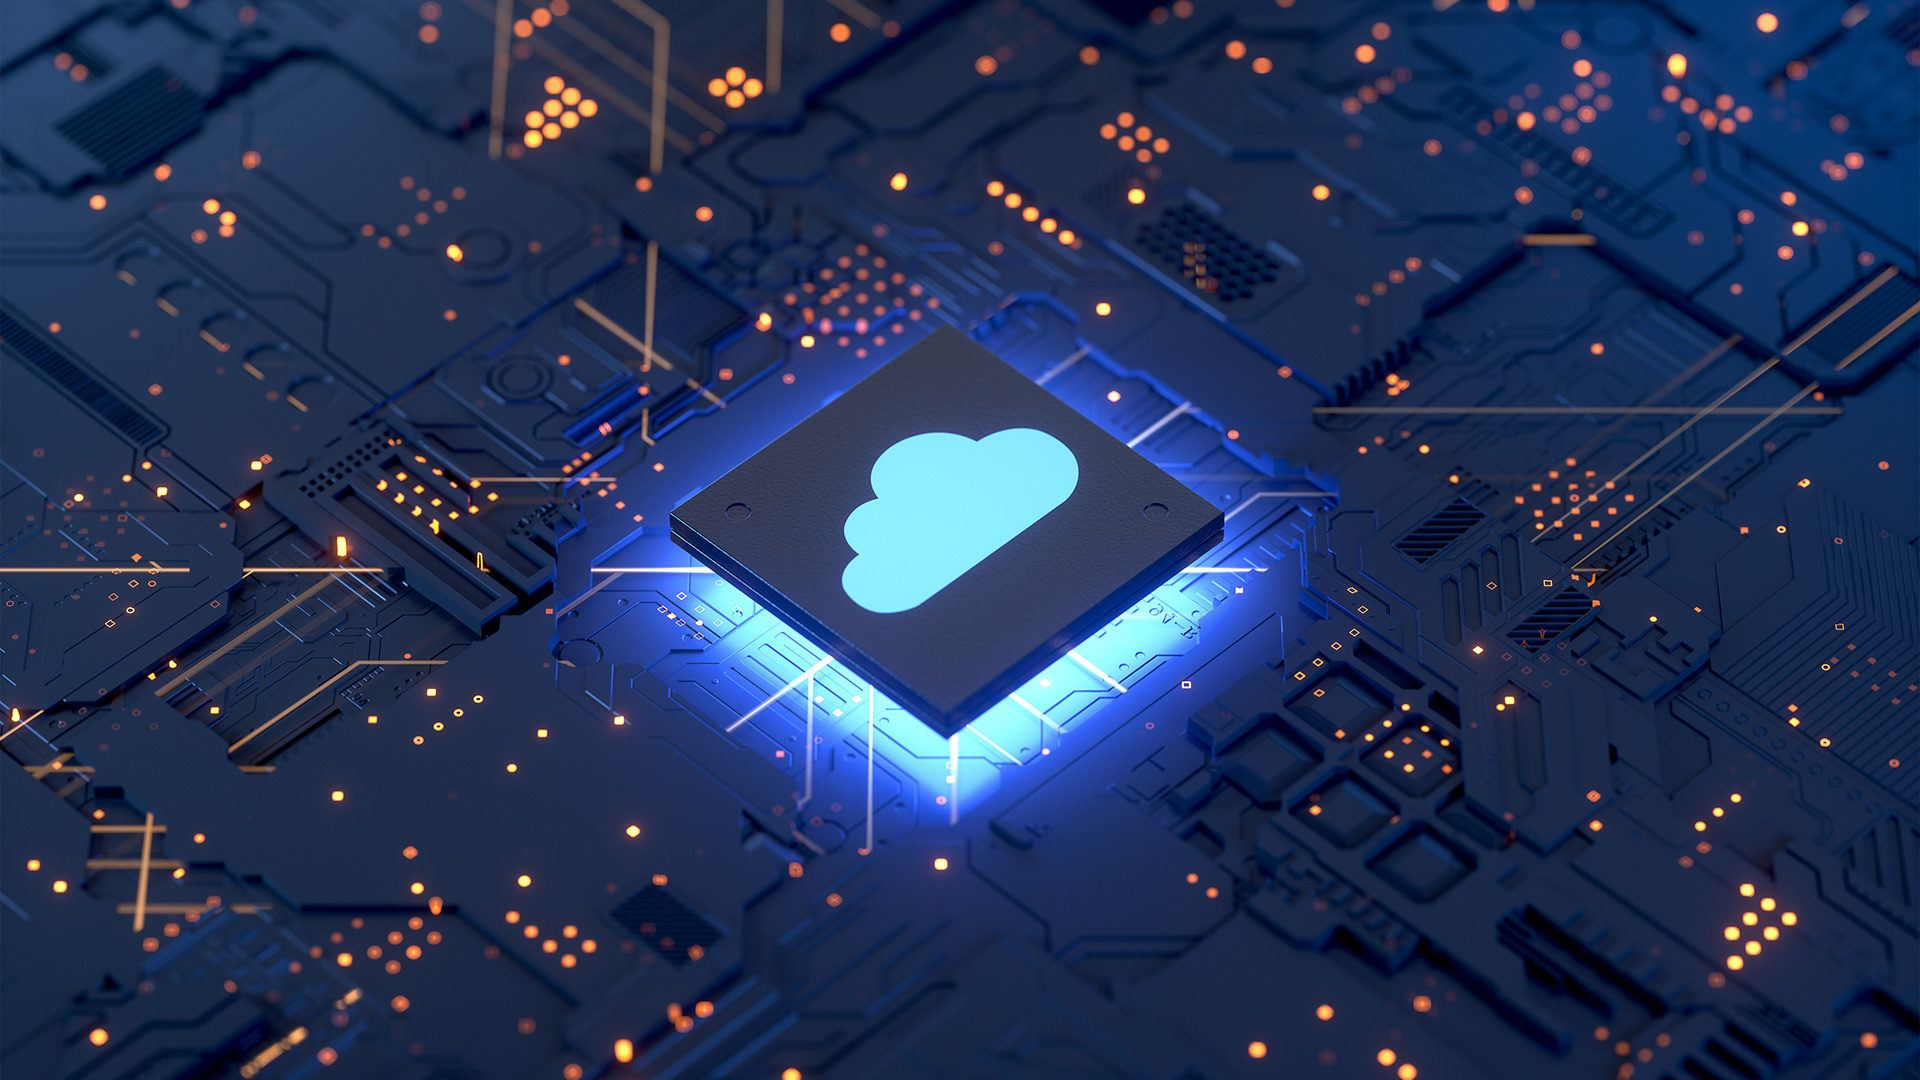 Concept image of a circuit board with a cloud icon